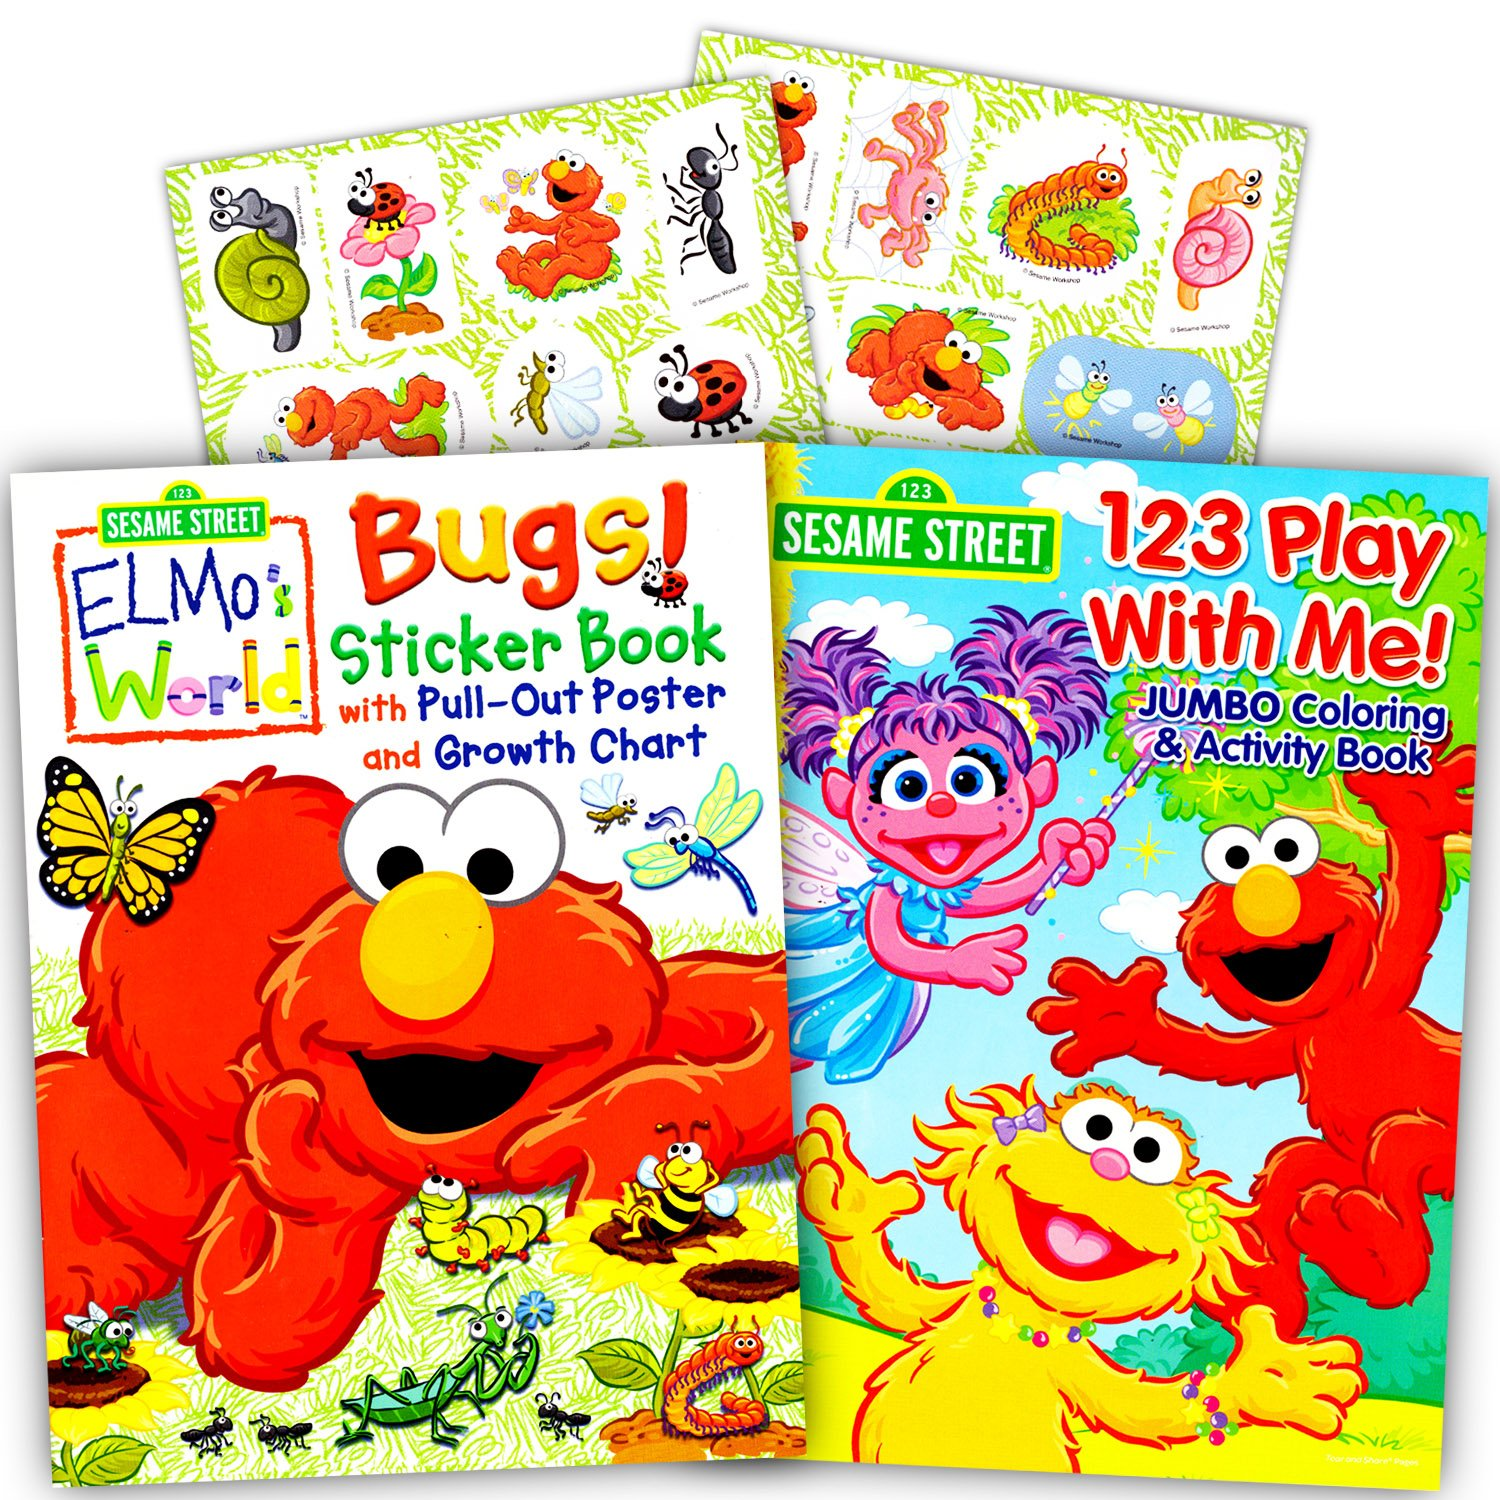 Wonderful Mandala Coloring Books Huge Stained Glass Coloring Book Shaped Precious Moments Coloring Book Avengers Coloring Book Youthful Books About Colors BrownPantone Color Books Amazon.com: Sesame Street Elmo Coloring Book Set With Stickers (2 ..